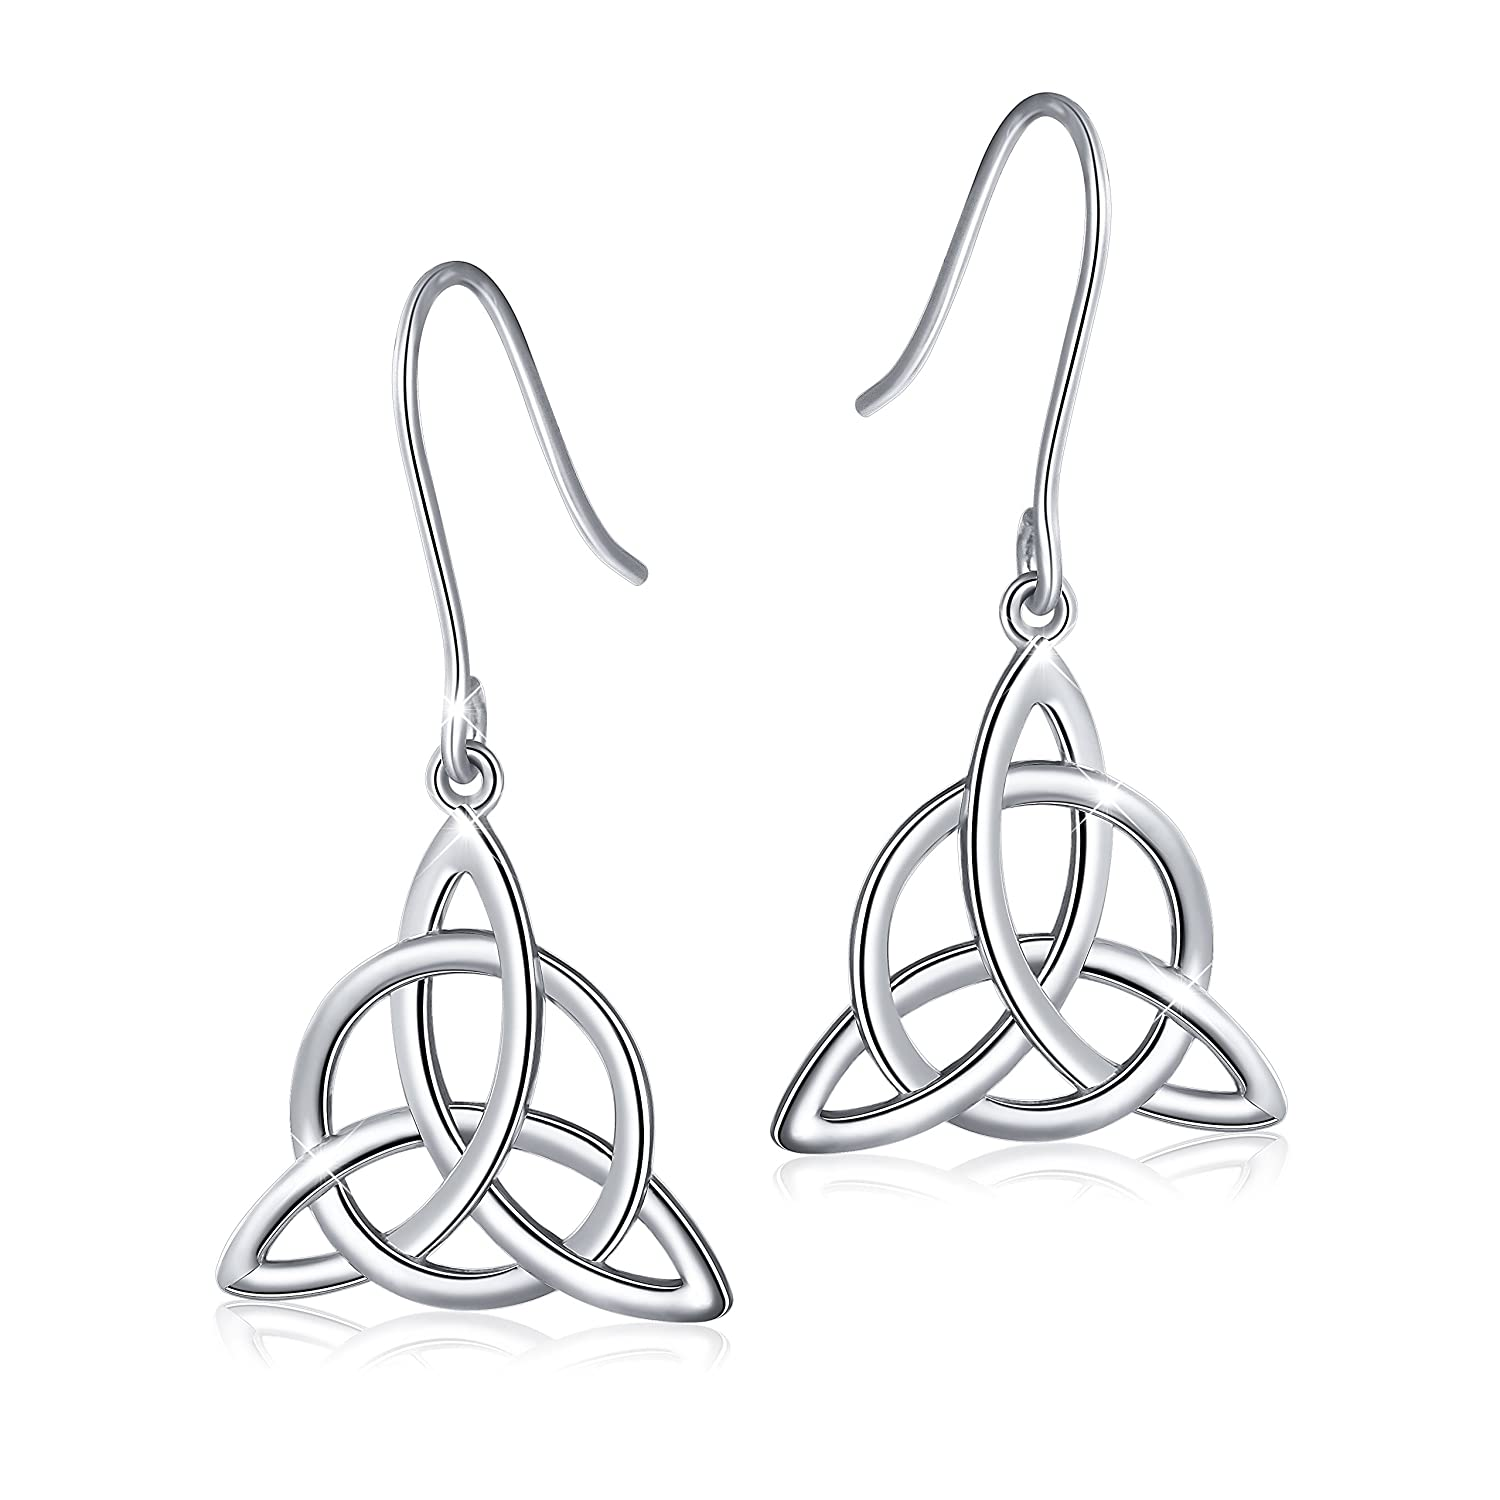 jh silver ears sterling breakell earrings knot celtic